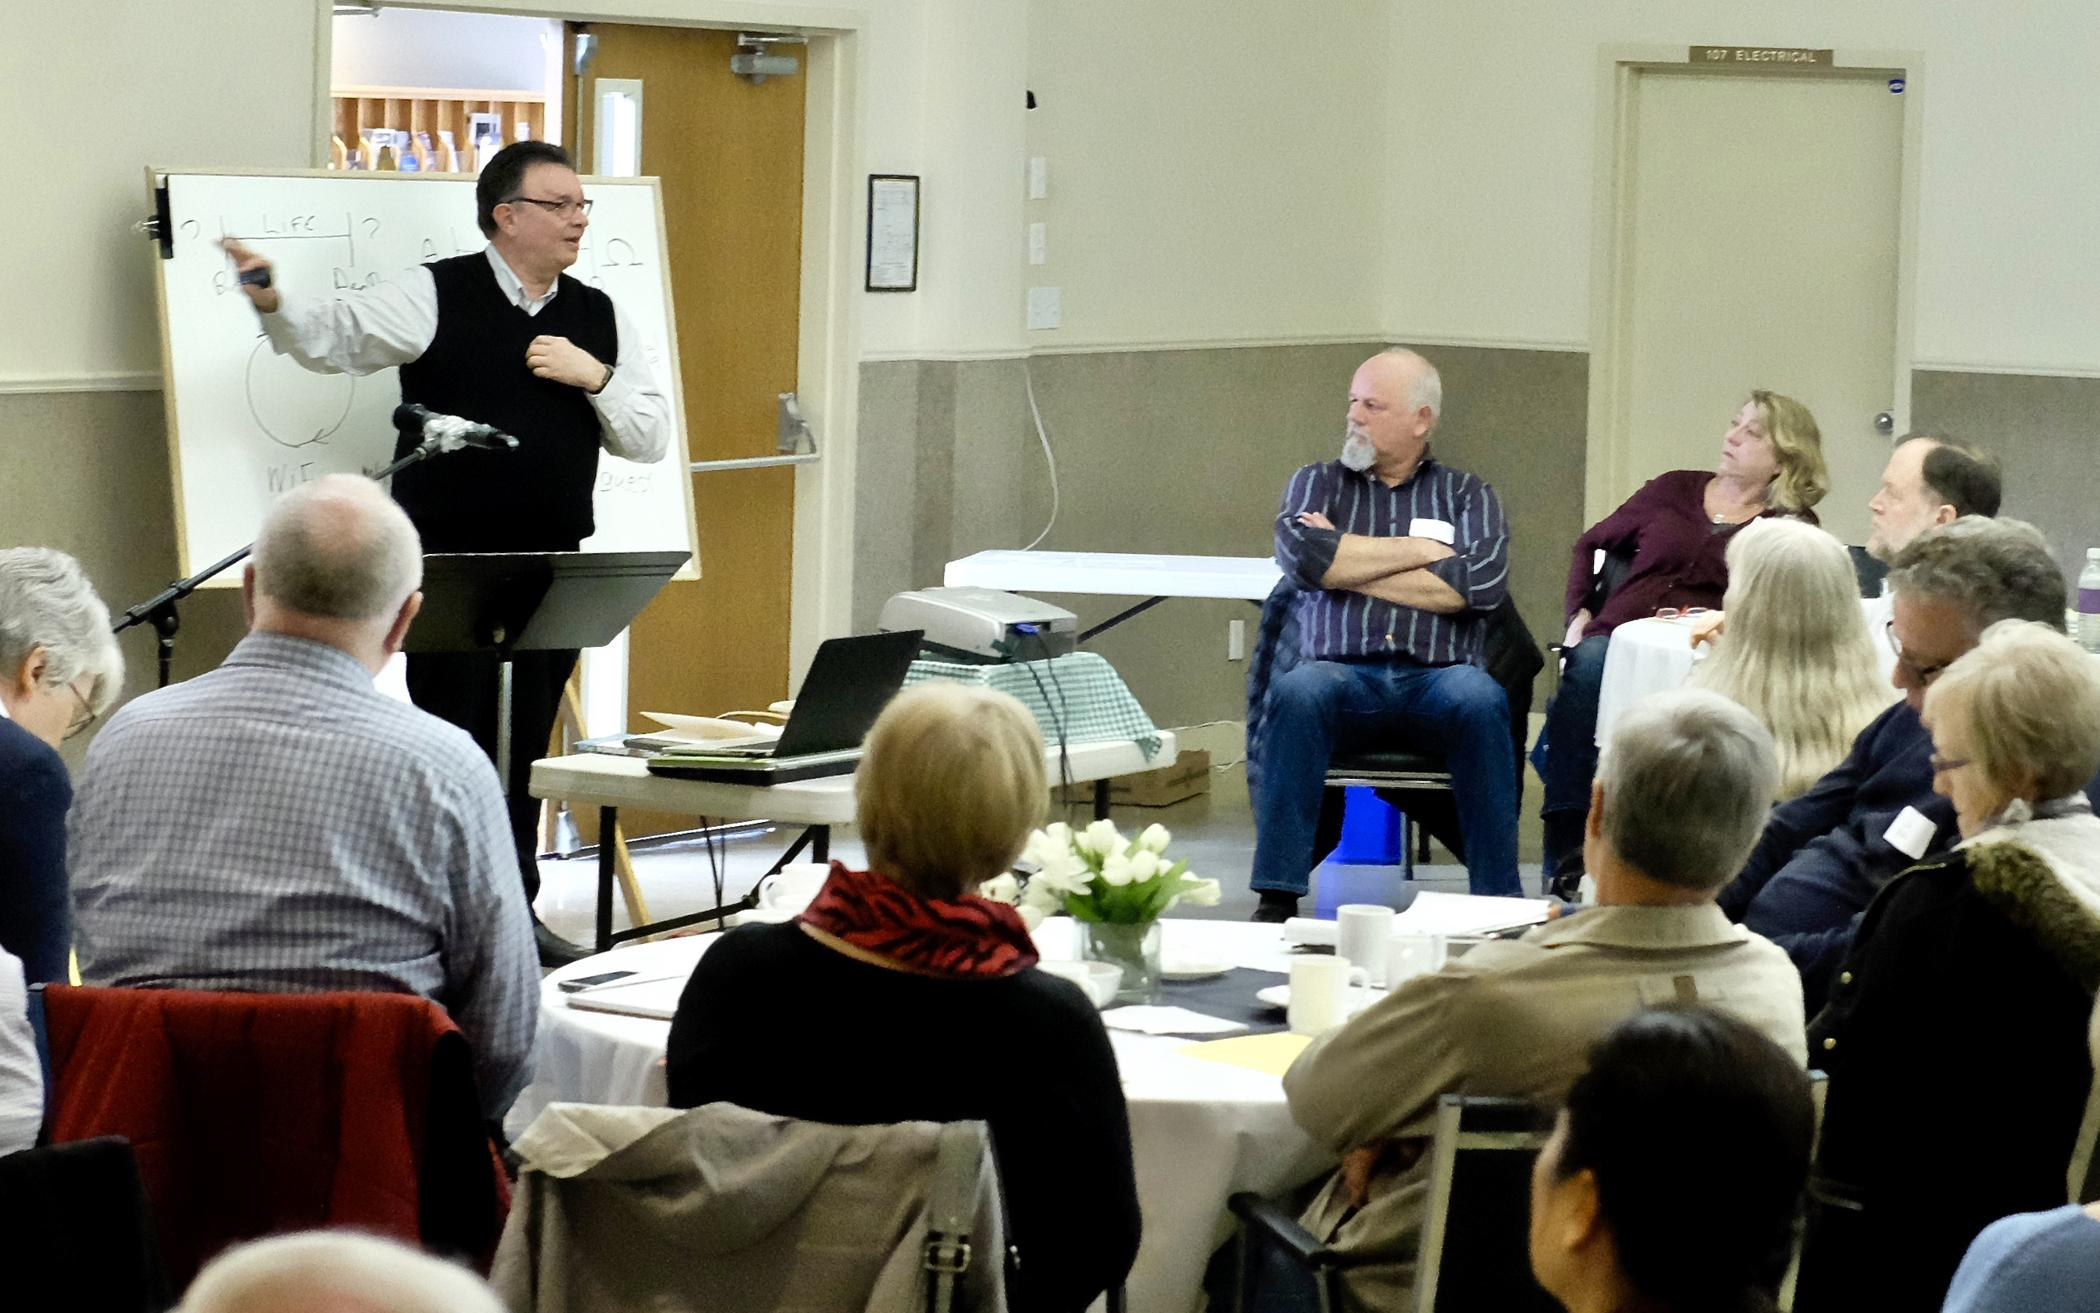 B.C. Churches Host 'Reframing Retirement' Workshop